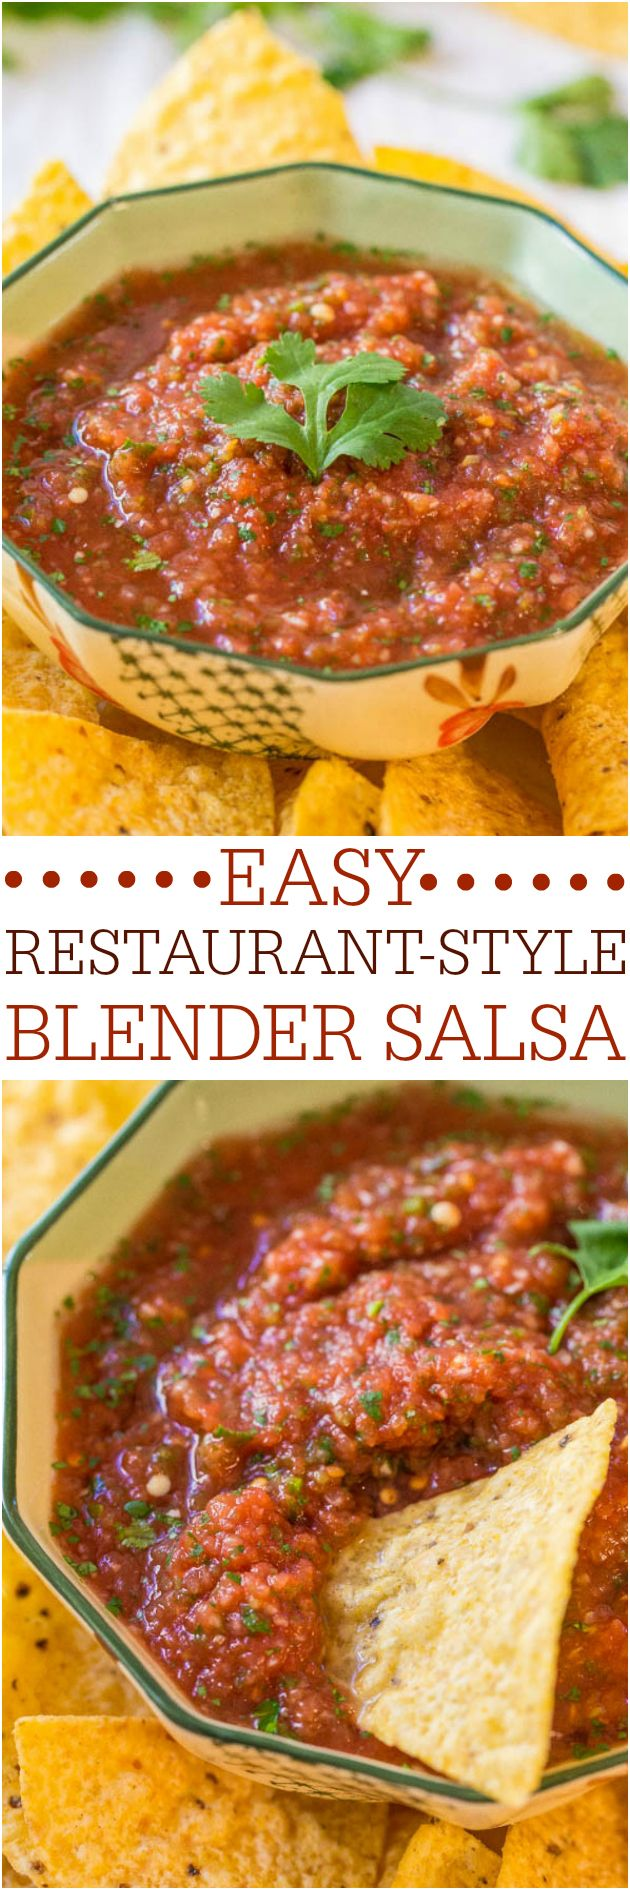 white platform shoes amazon Easy Restaurant Style Blender Salsa   Make your own salsa in minutes  Fast  easy  goofproof and tastes 1000x better than anything you  39 d buy